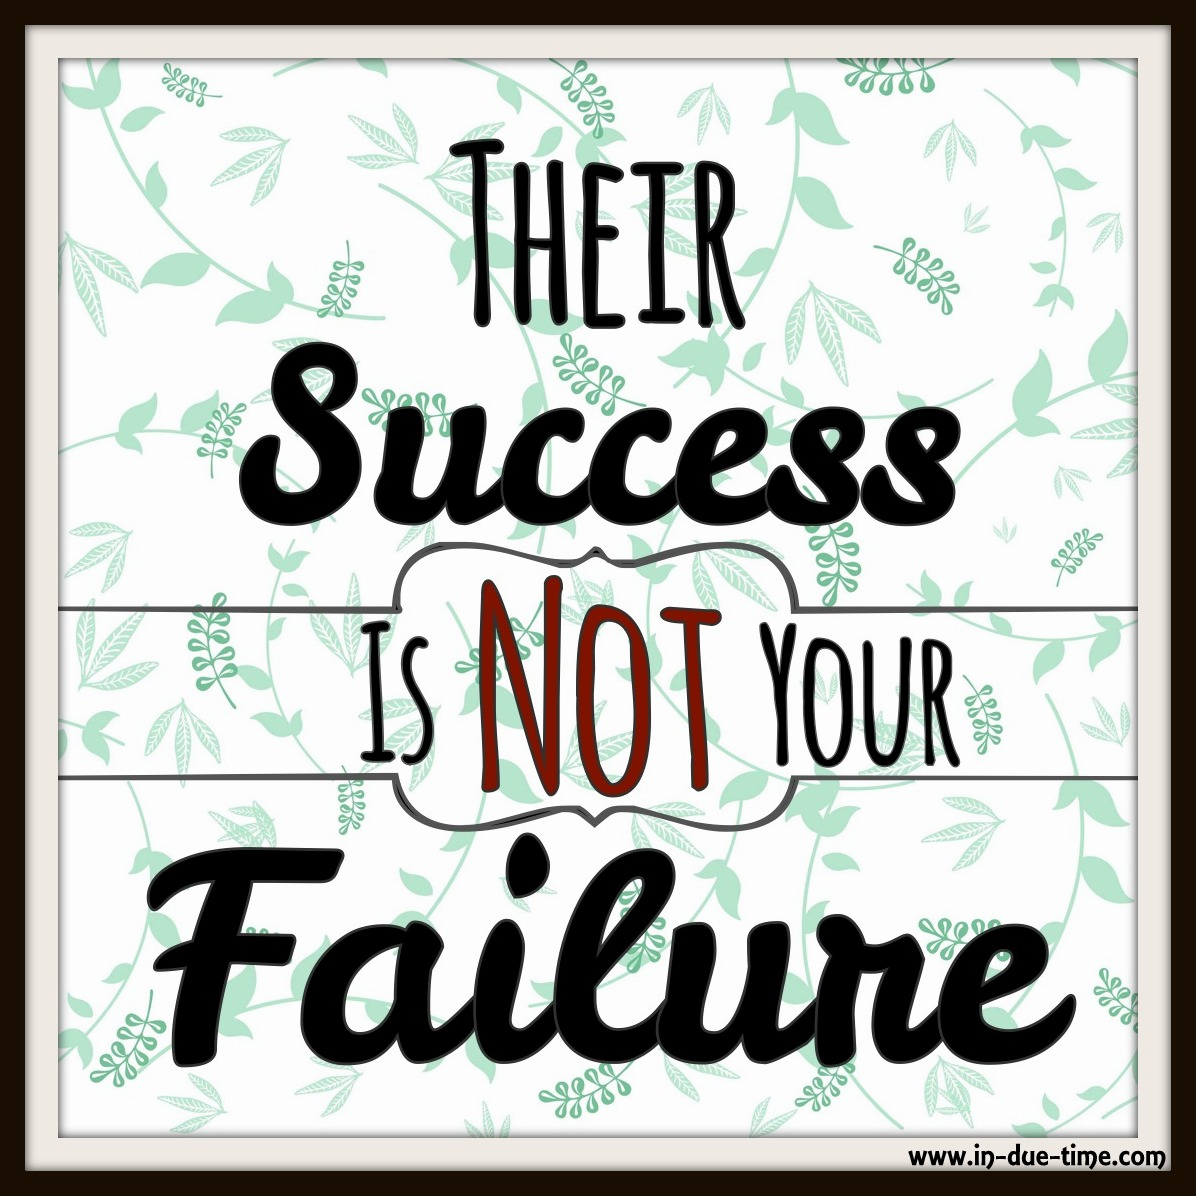 Their Success is Not Your Failure - In Due Time blog